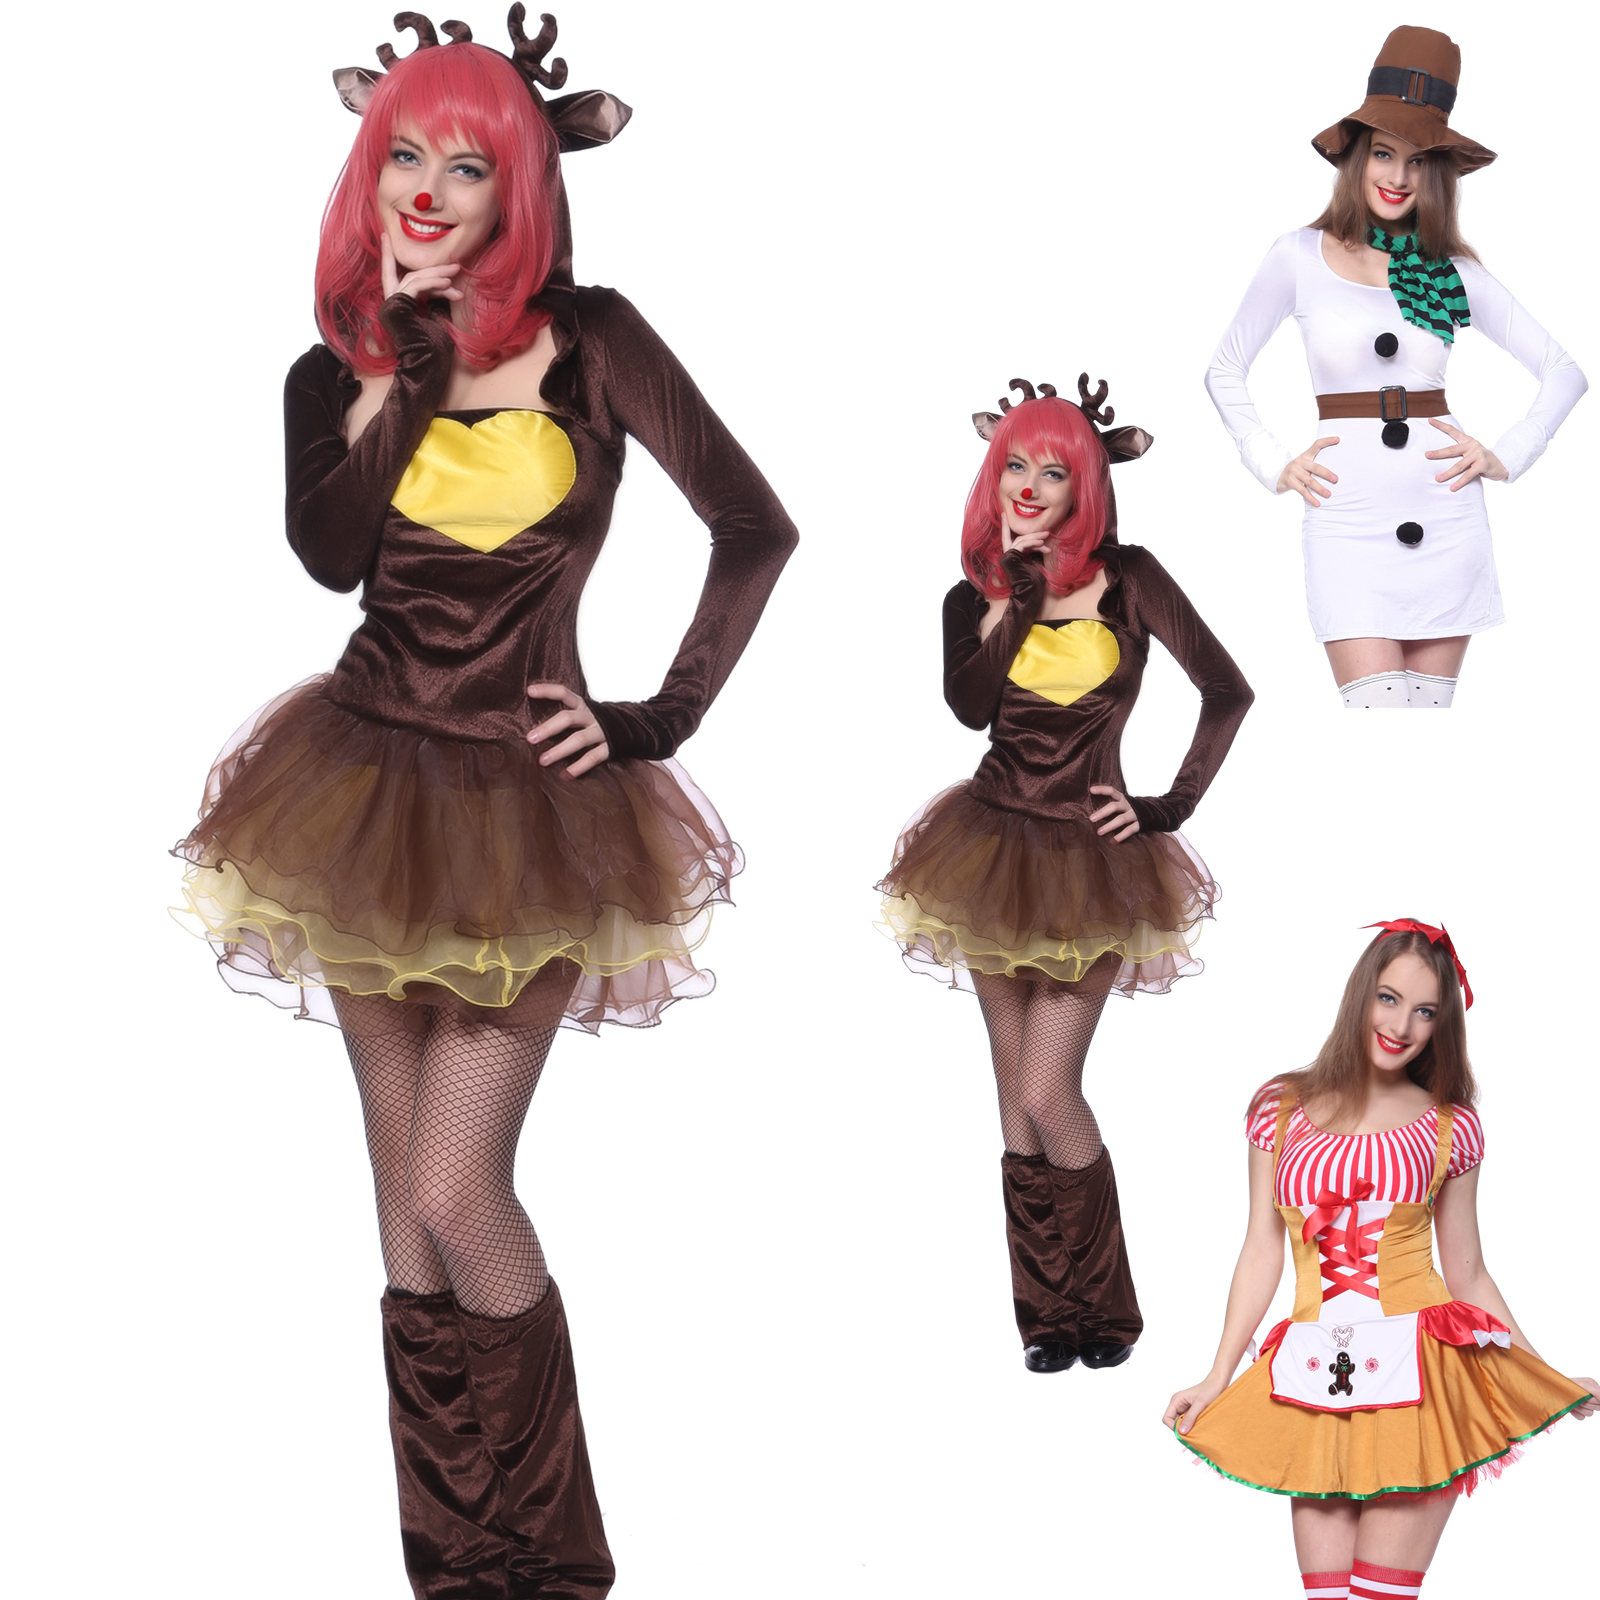 costume deguisement bonhomme cerf serveuse noel carnaval halloween femme fille ebay. Black Bedroom Furniture Sets. Home Design Ideas